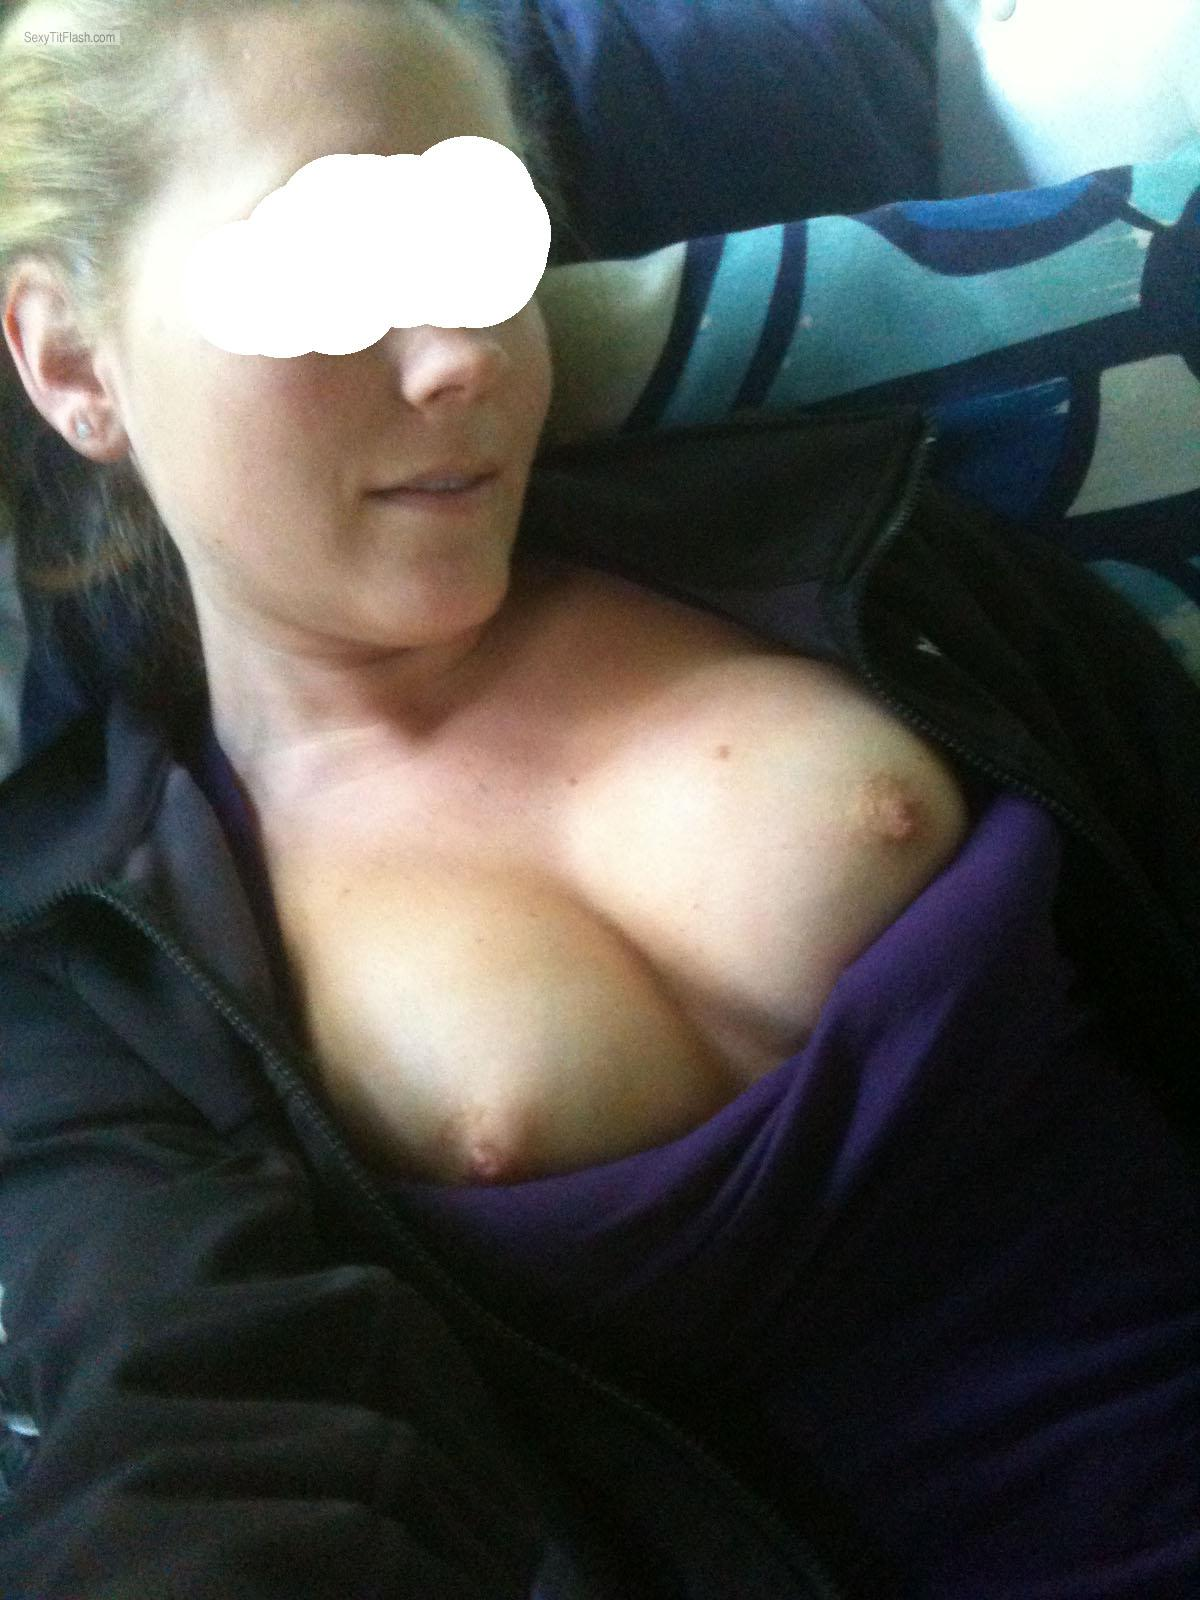 Tit Flash: Girlfriend's Tanlined Medium Tits (Selfie) - Whatever from United States